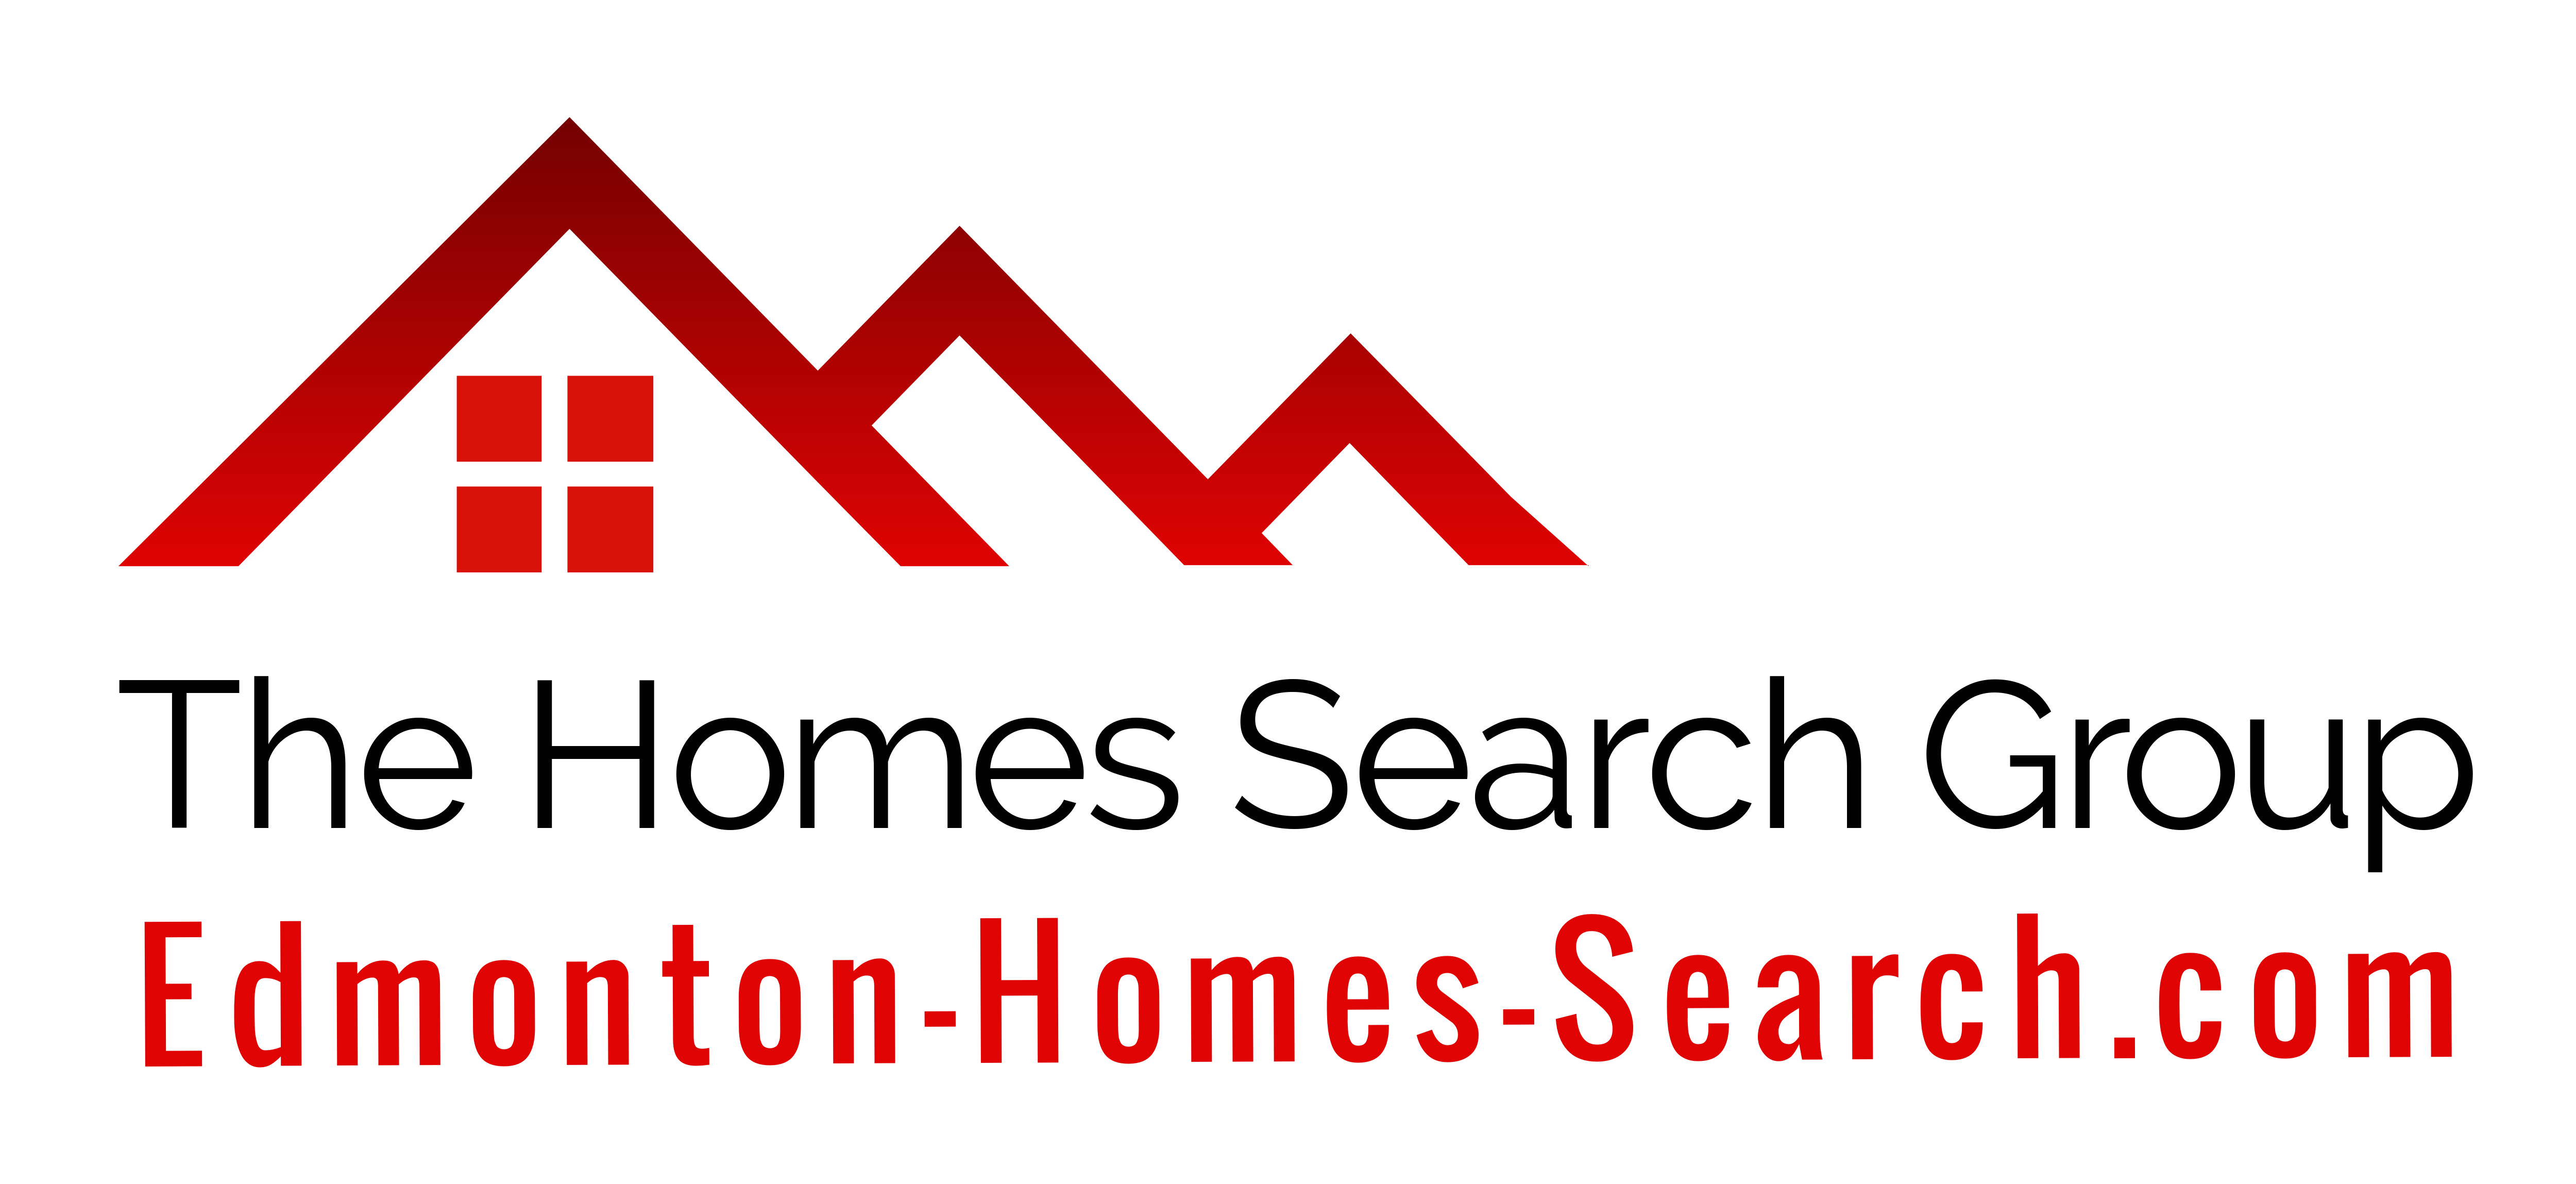 Southwest Edmonton - Southwest Edmonton Homes